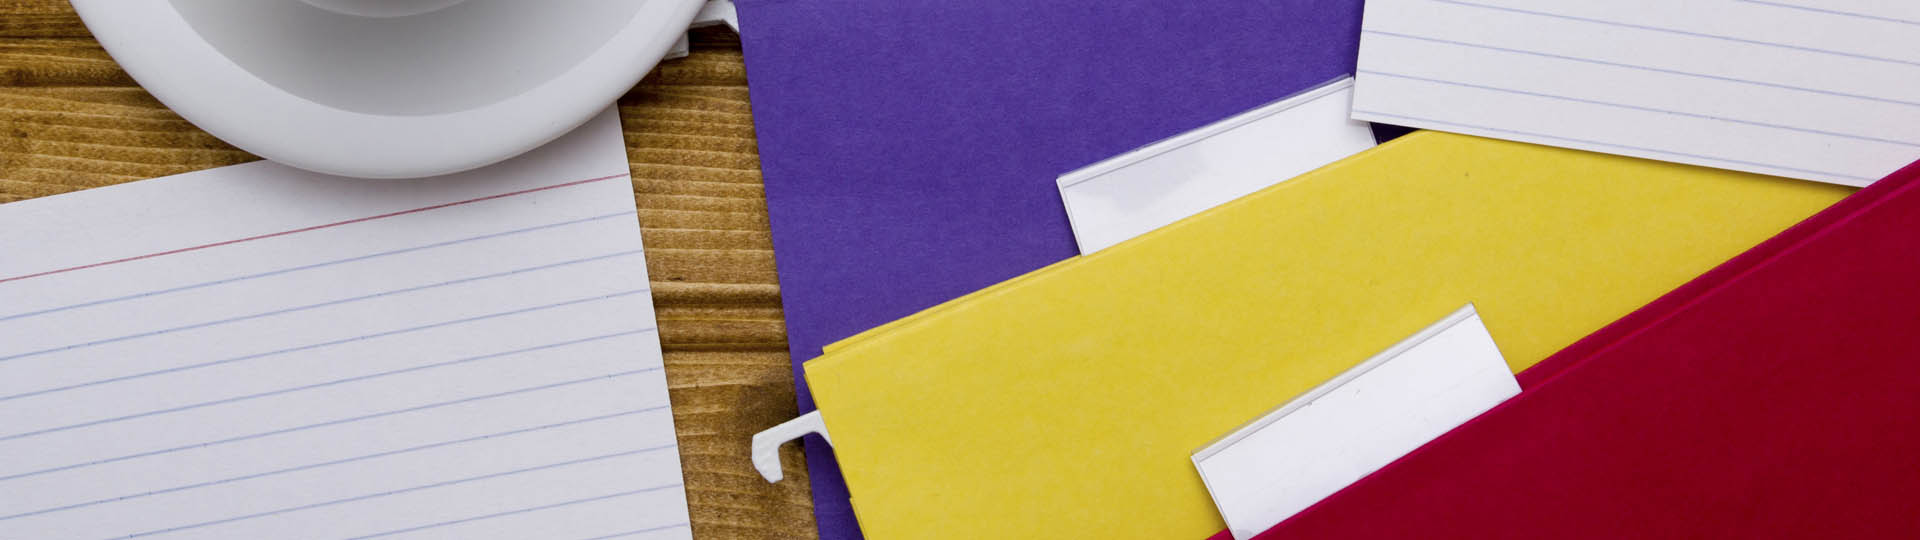 top view of stacks of file folders on top of a table